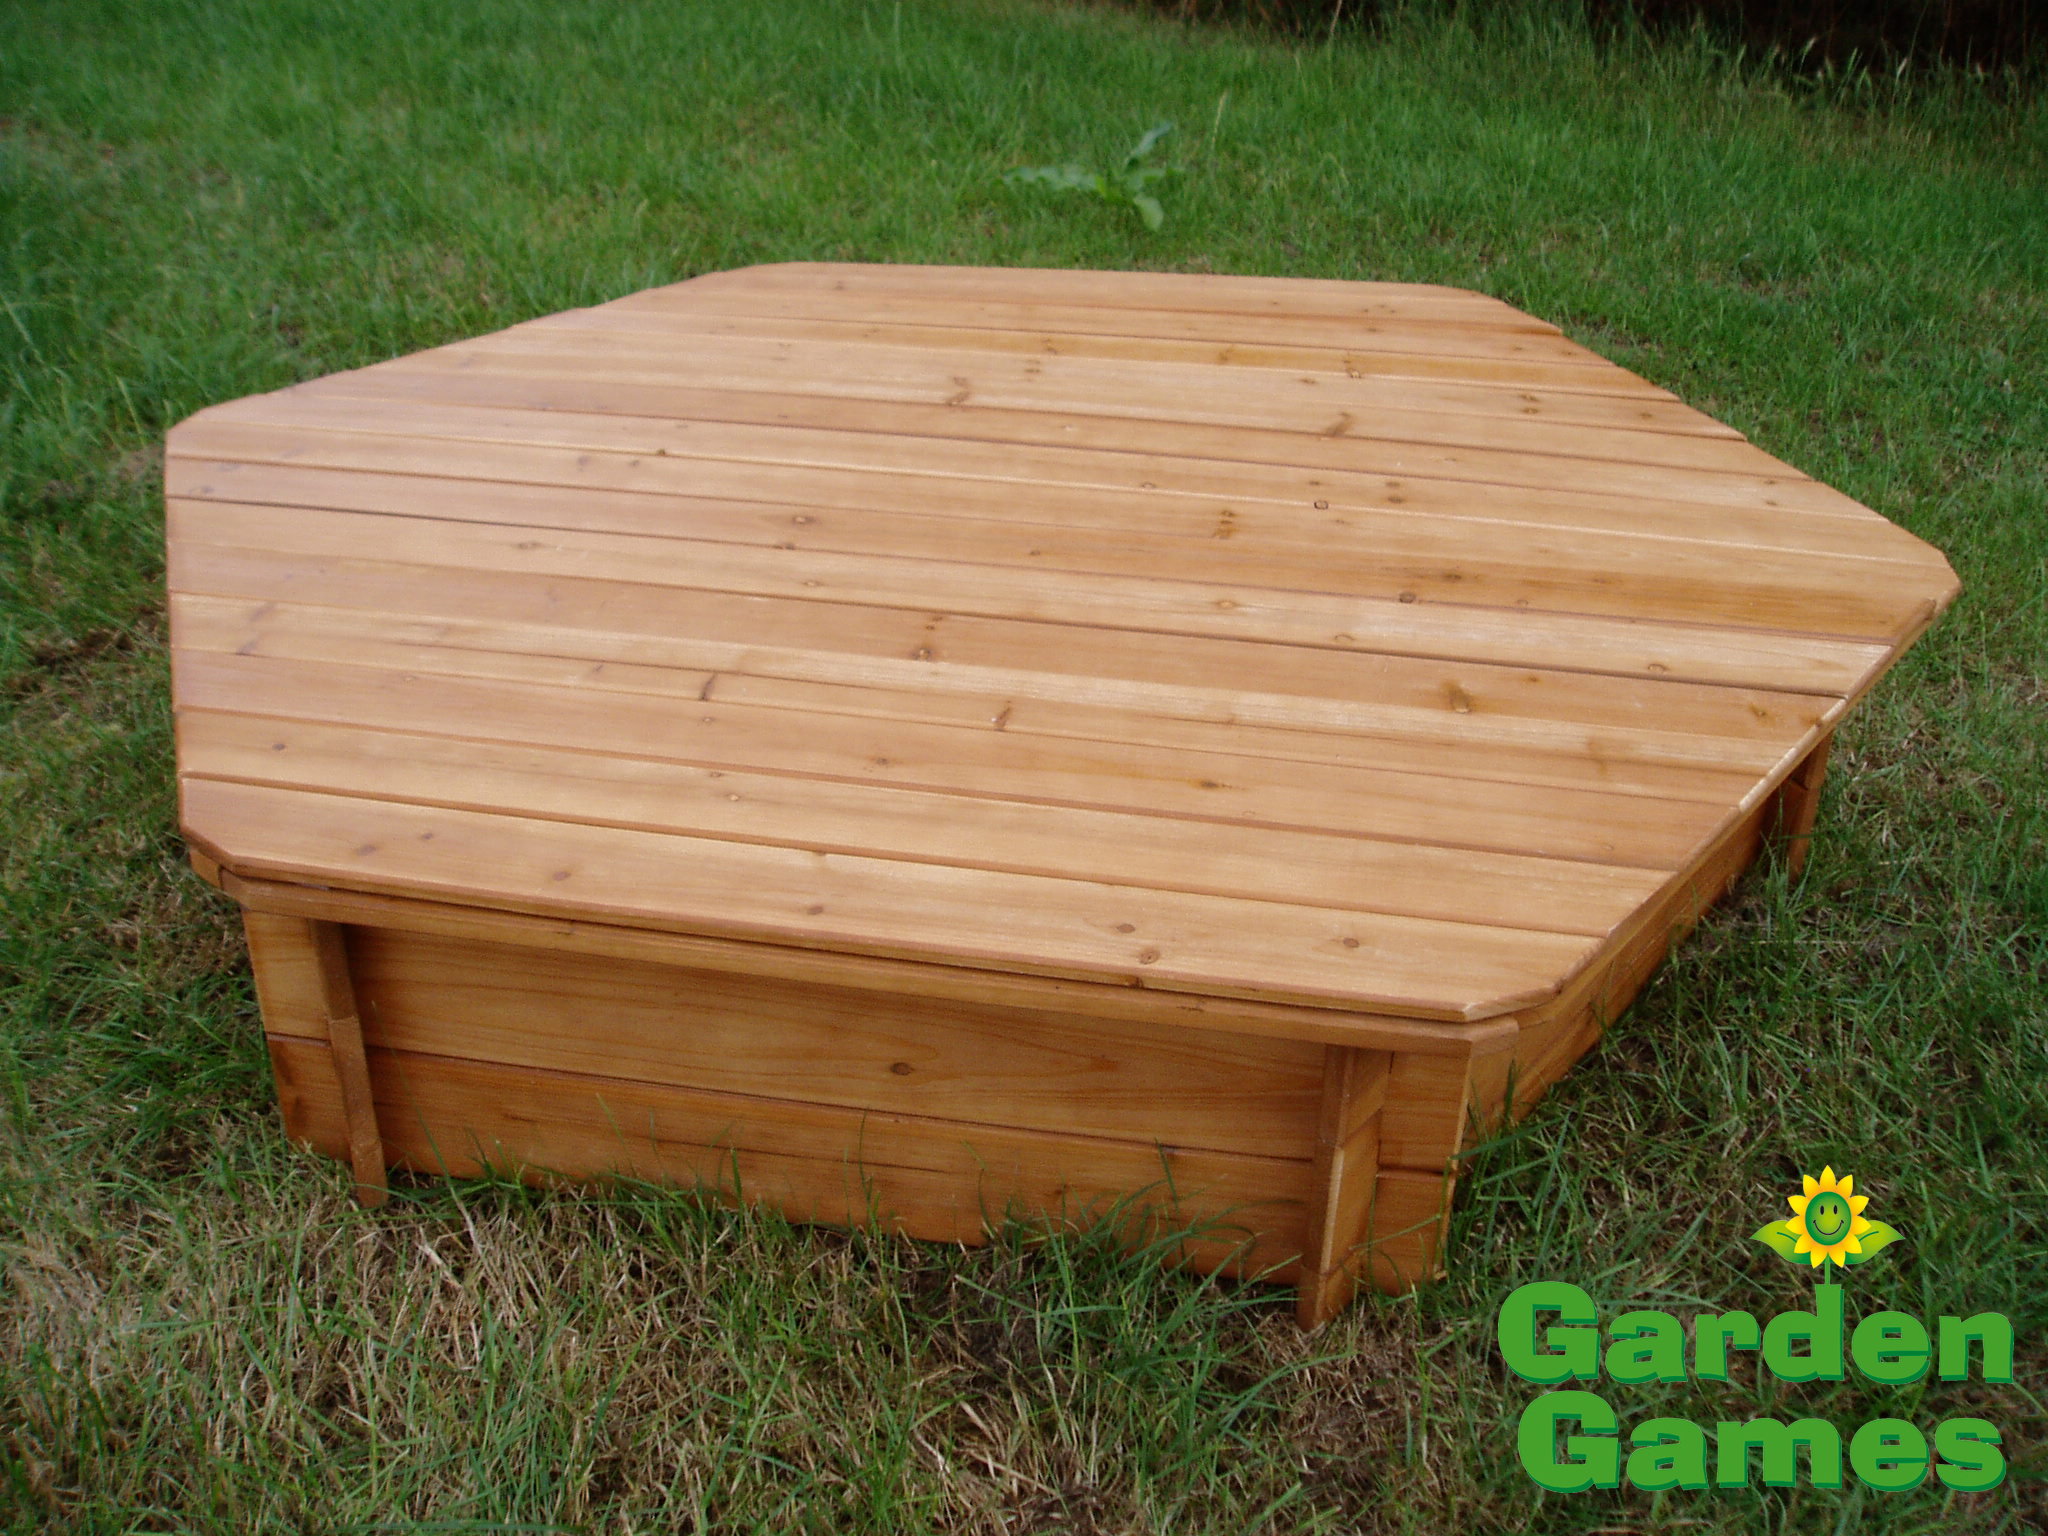 Garden games wooden lid for hexagonal sandbox concertina for Garden design game